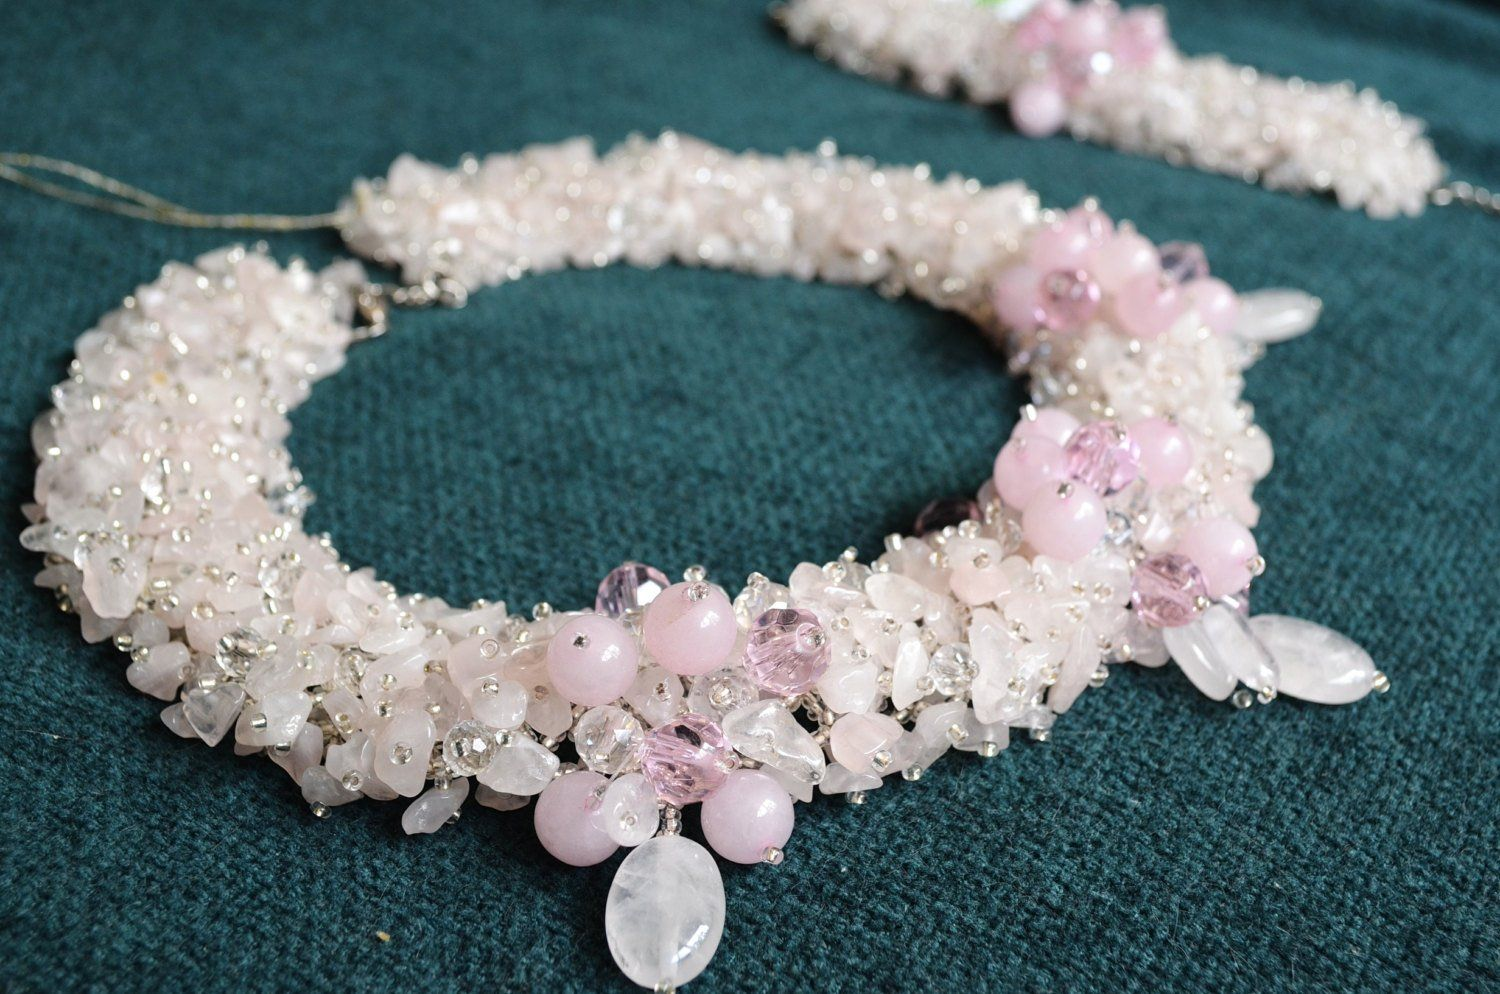 Rose Quartz Beaded Jewelry Pink Quartz Crystal Collar Necklace Bracelet Set of 2 Natural Gemstone Handwoven Artisan Jewelry Beach Wedding